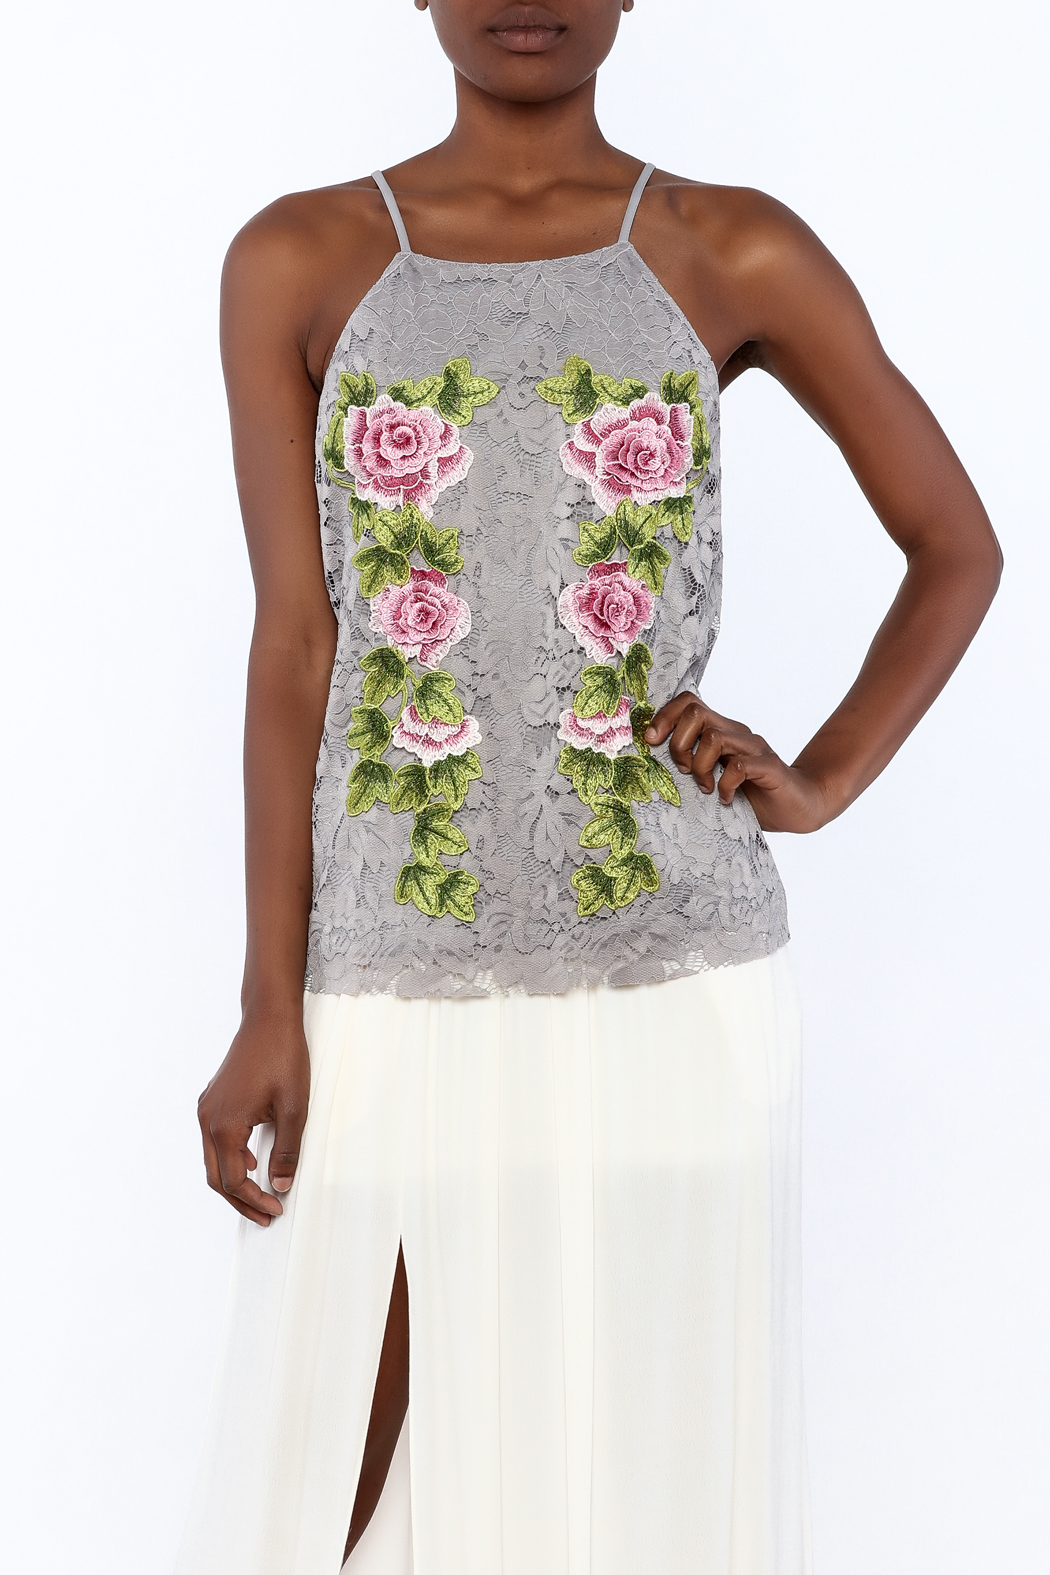 Gina Louise Cascading Roses Top - Main Image